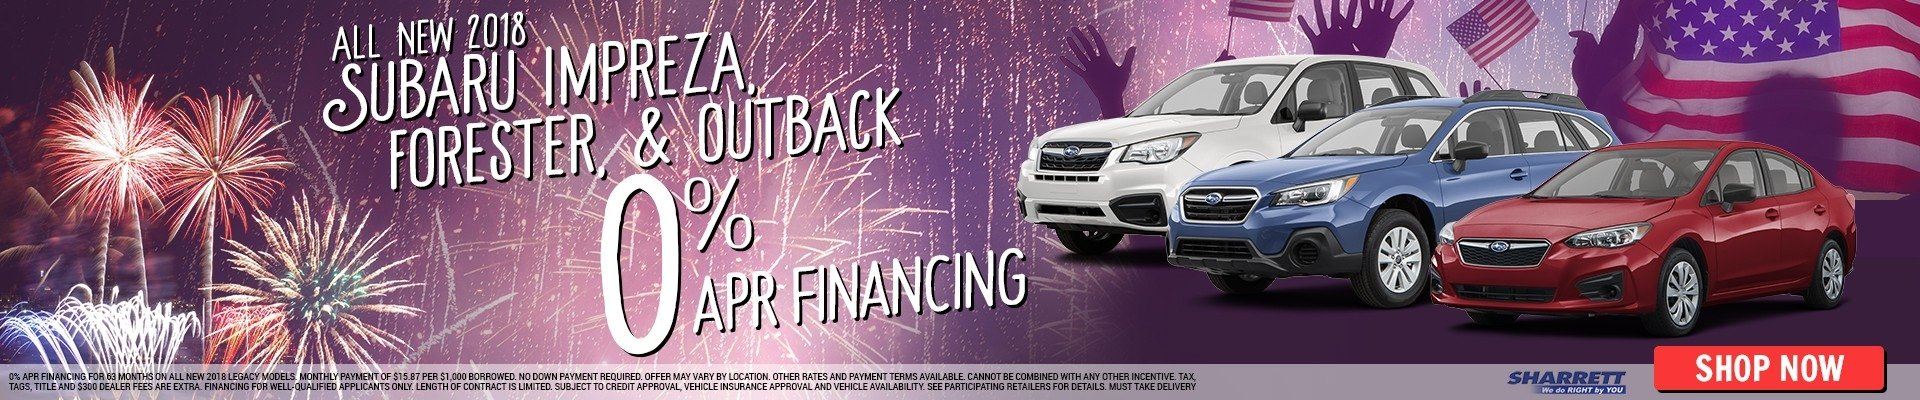 Get 0% APR Financing on all new 2018 Subaru Impreza, Forester, & Outback models